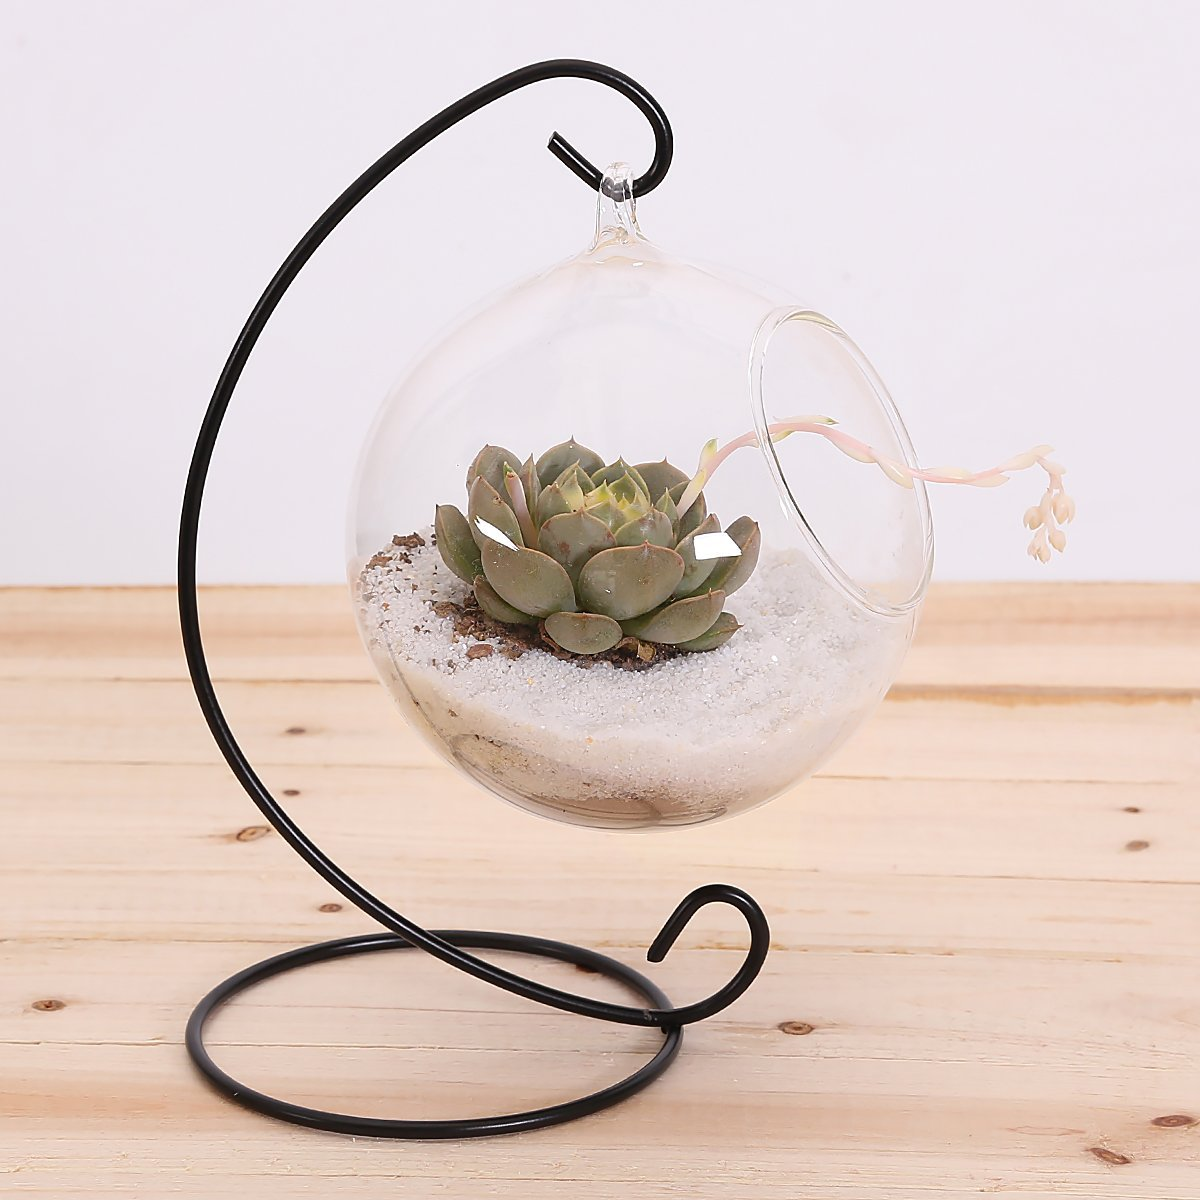 10L0L Charming Clear Hanging Glass Ball Vase Air Plant Terrarium Kit/Succulent Flowerpot Container w/Black Metal Stand (Big) by 10L0L